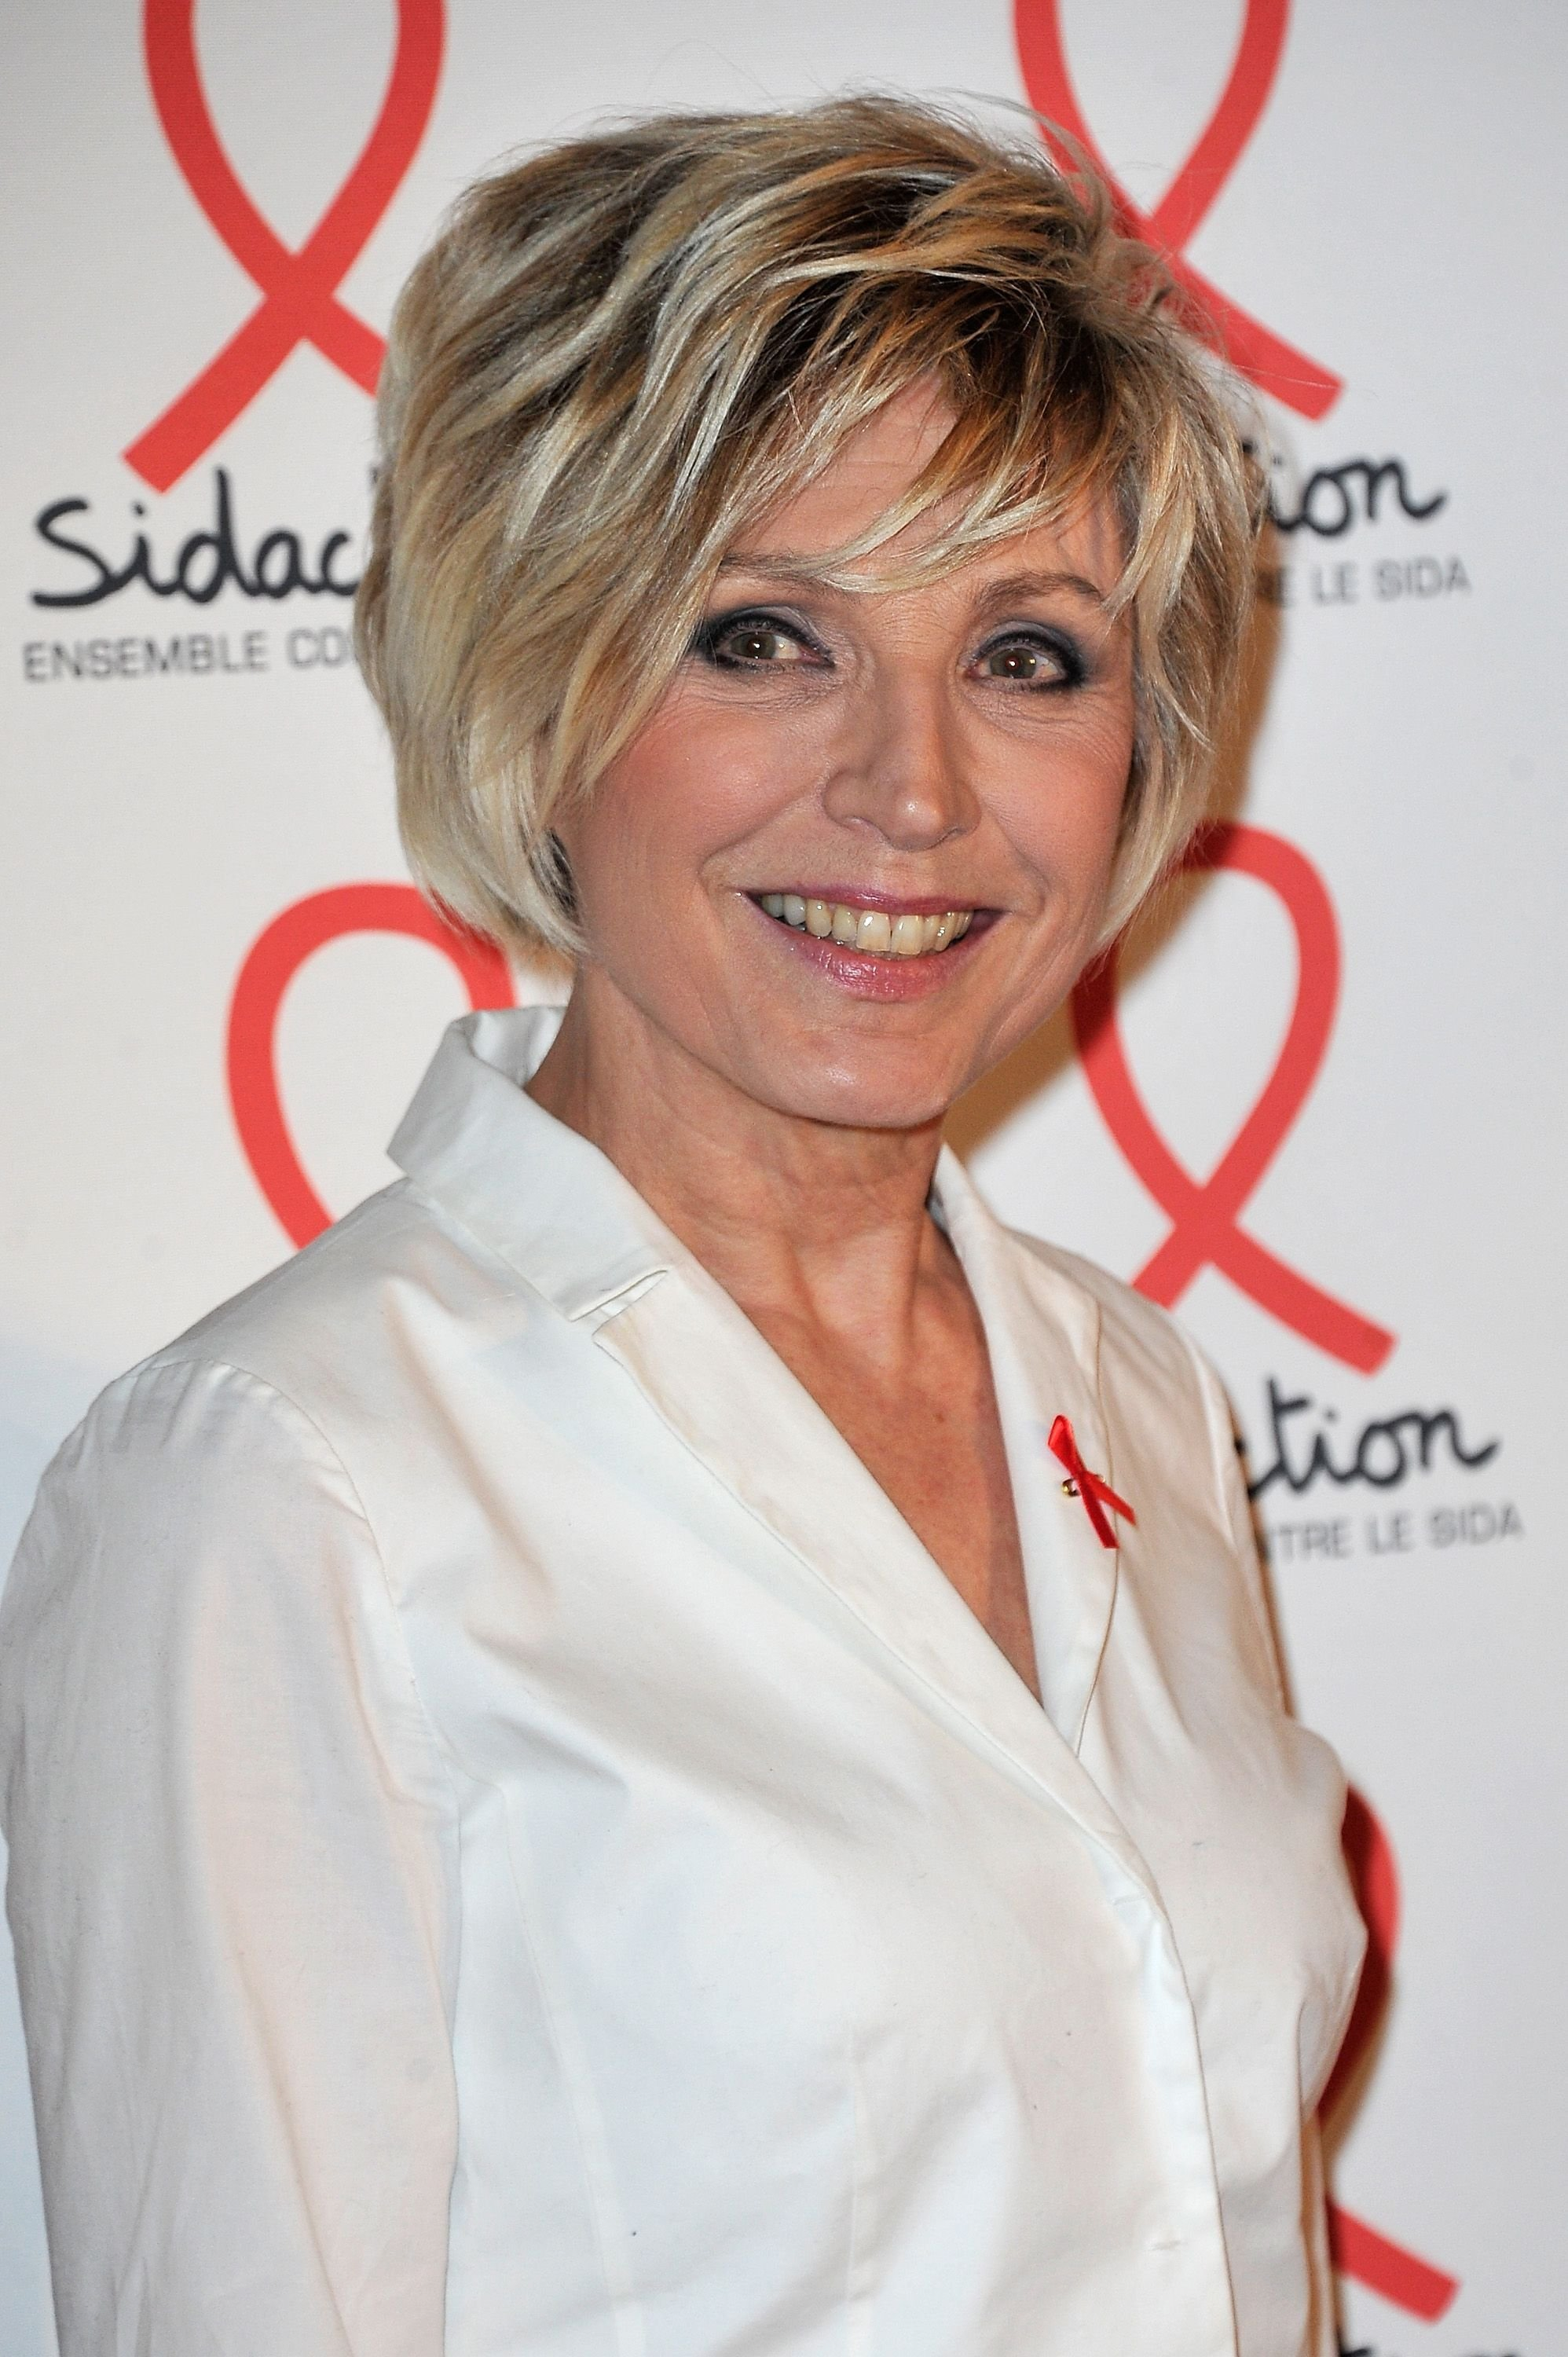 Evelyne Dheliat assiste à la soirée de lancement Sidaction 2016 photocall au Musée du Quai Branly le 7 mars 2016 à Paris, France. | Photo : Getty Images